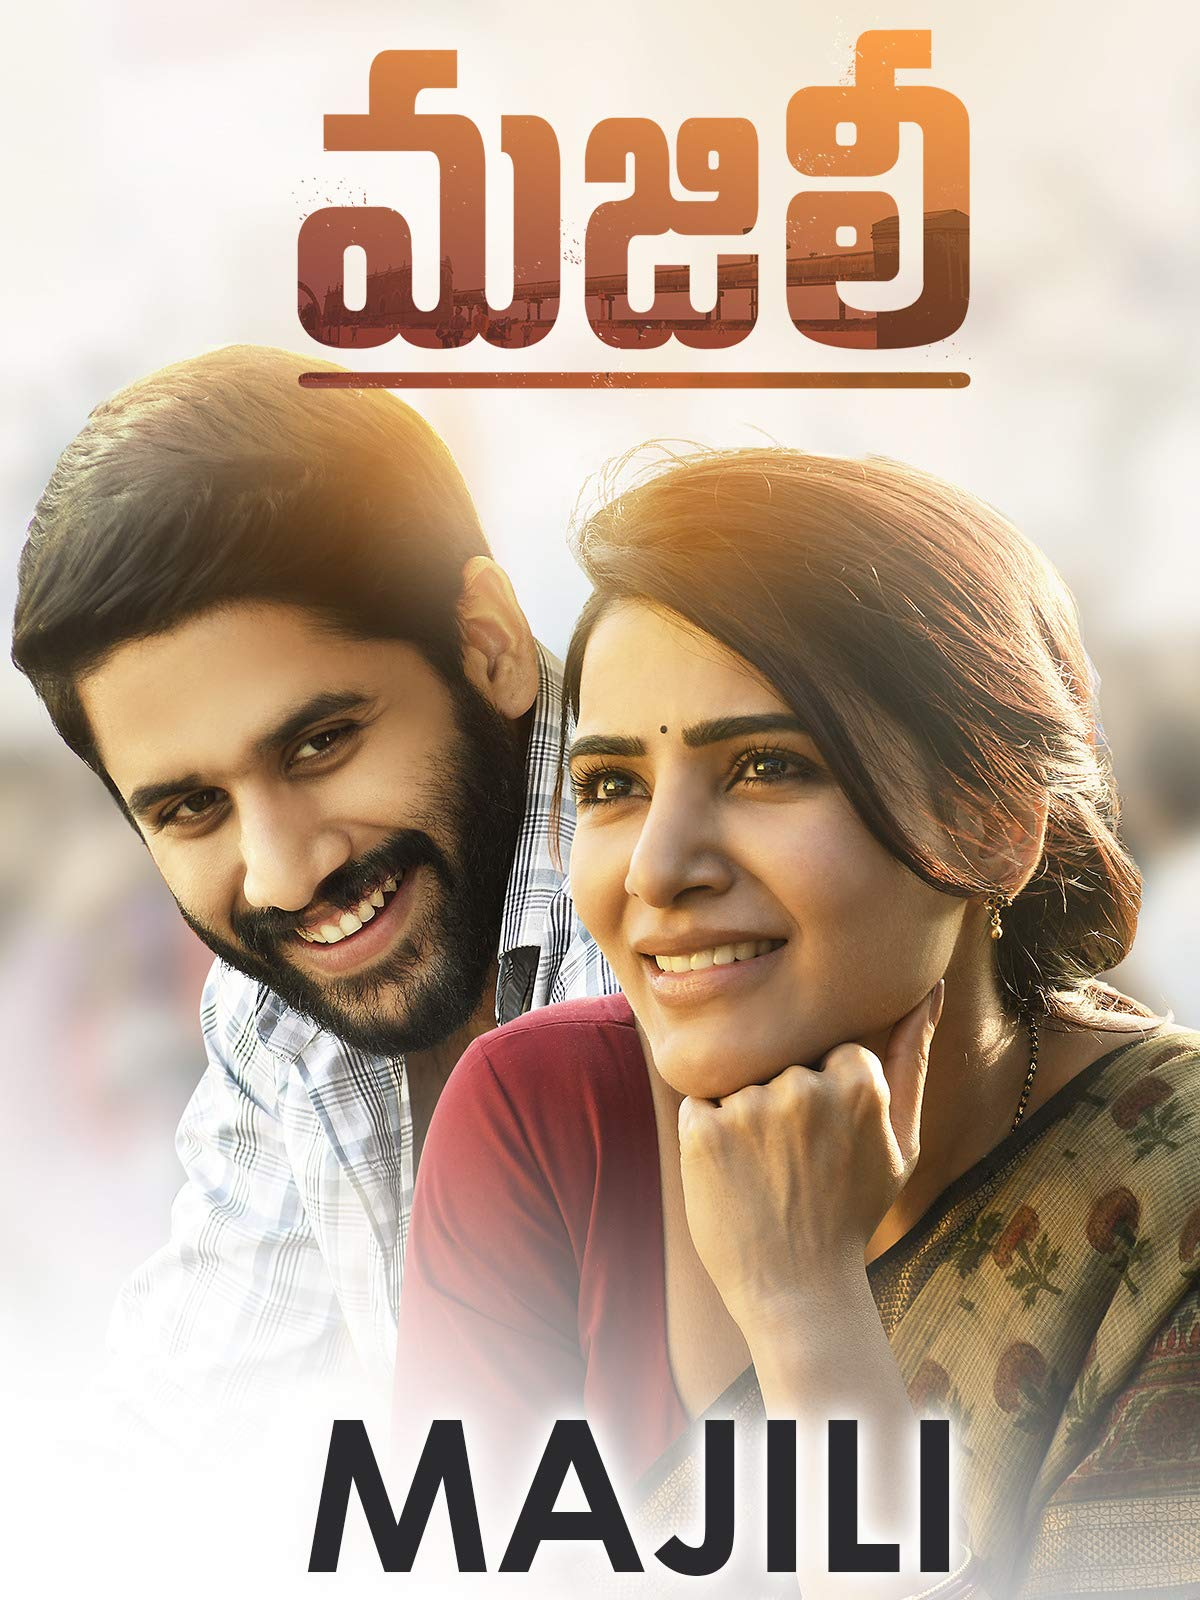 MAJILI (2019) HDRip x264 (Tamill+Telugu+Hindi) Movie 1.53GB Esbu 720p Download